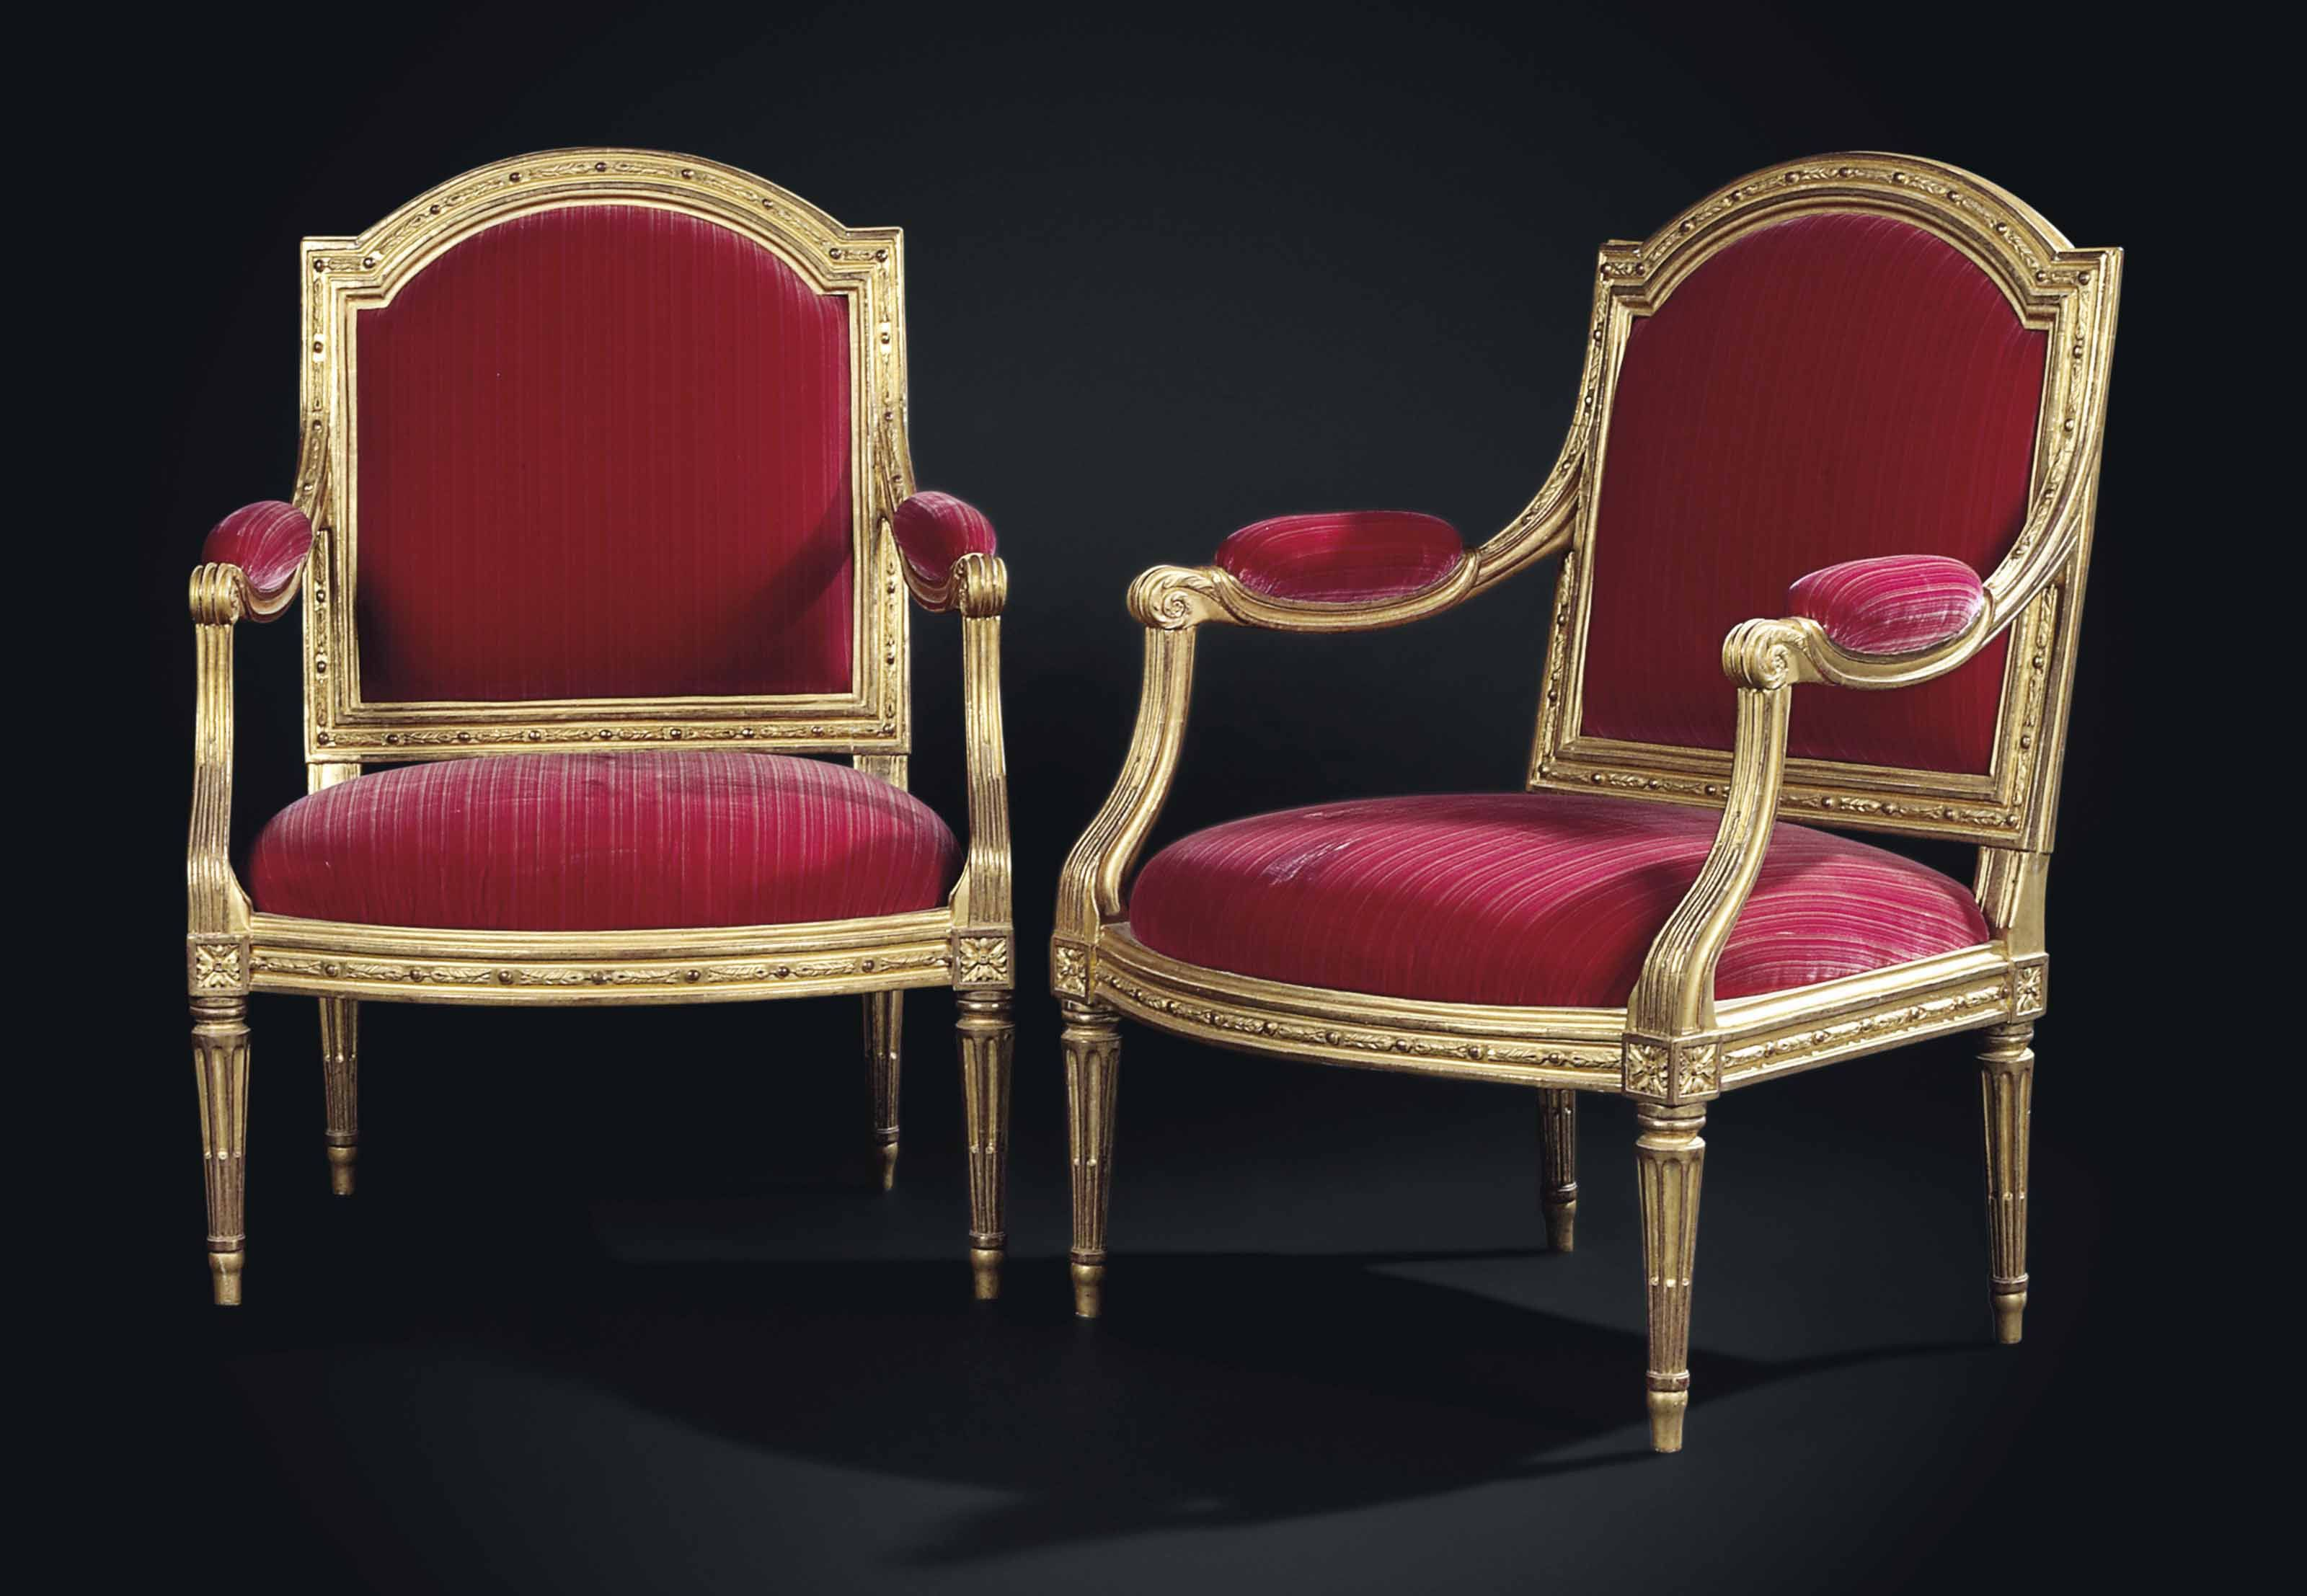 C1780 A Pair Of Louis Xvi Giltwood Fauteuils A La Reine By Louis Delanois Circa 1780 Price Rea French Style Furniture Louis Xvi Chair Balcony Table And Chairs